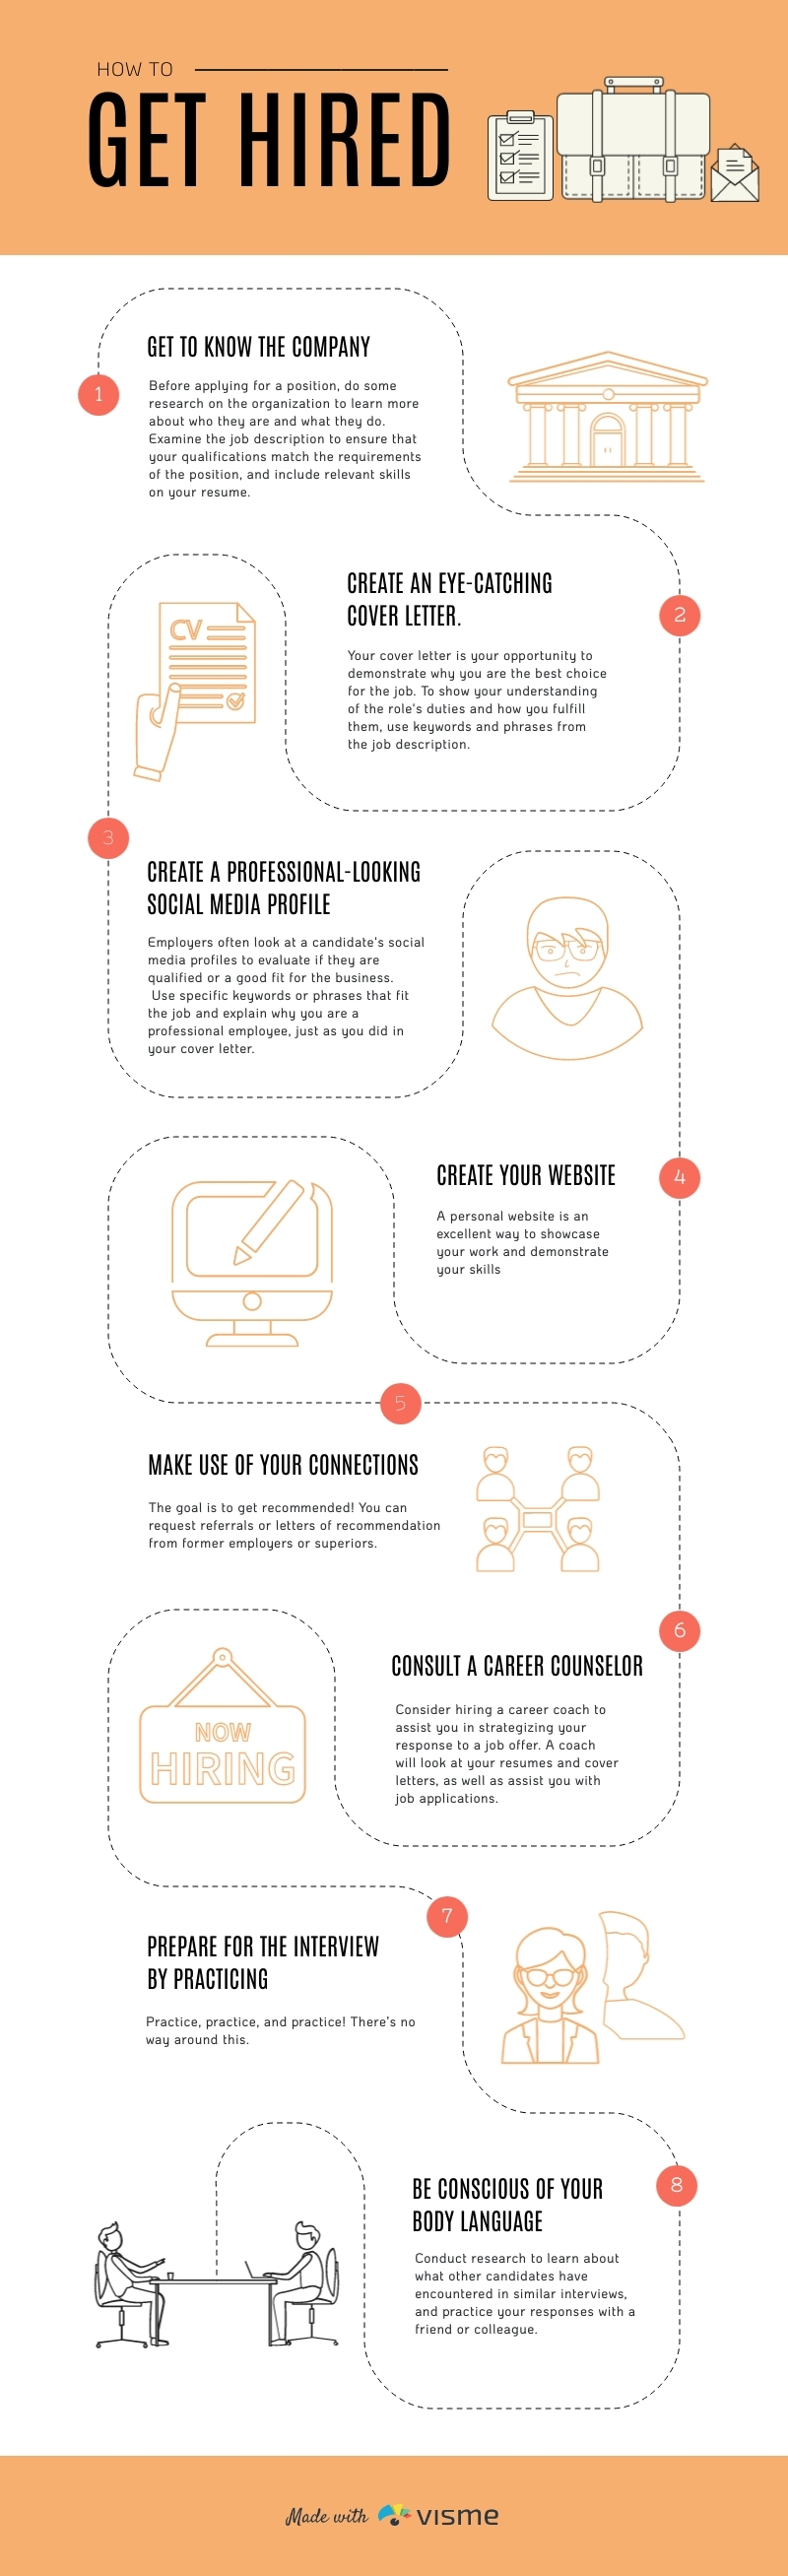 How to Get Hired - Infographic Template